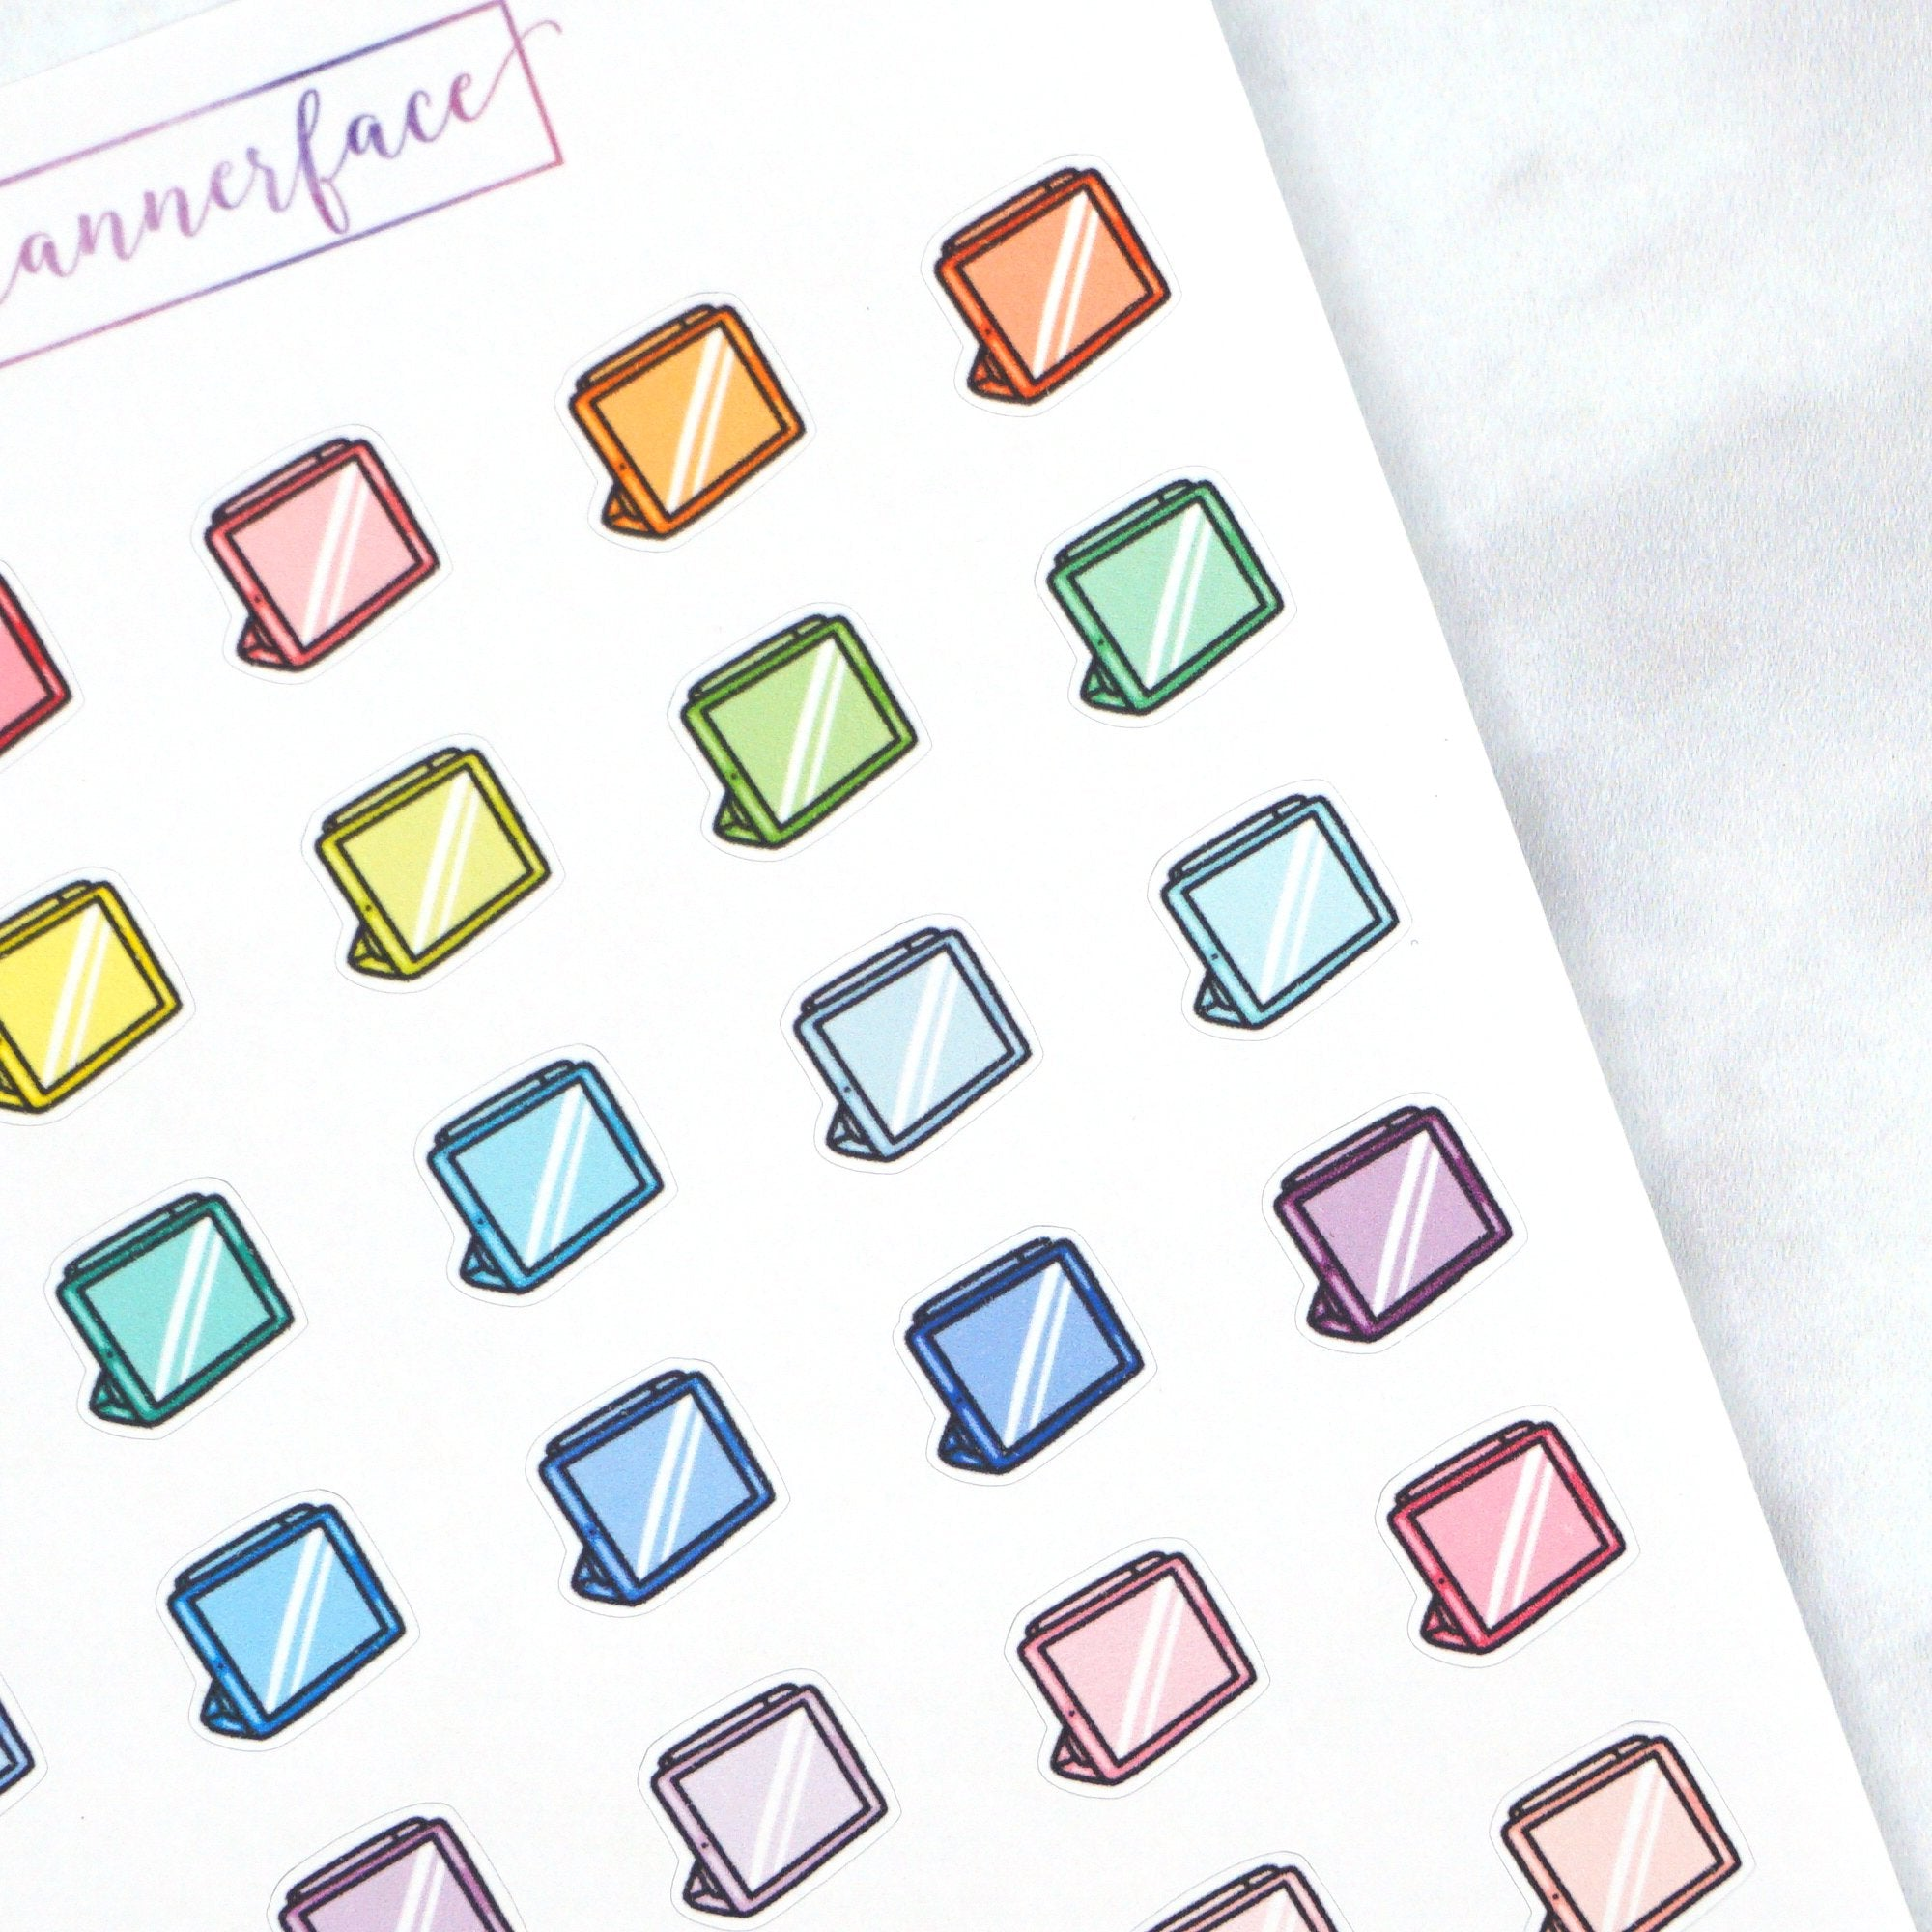 Plannerface Graphics Tablet Multicolour Doodles Planner Stickers